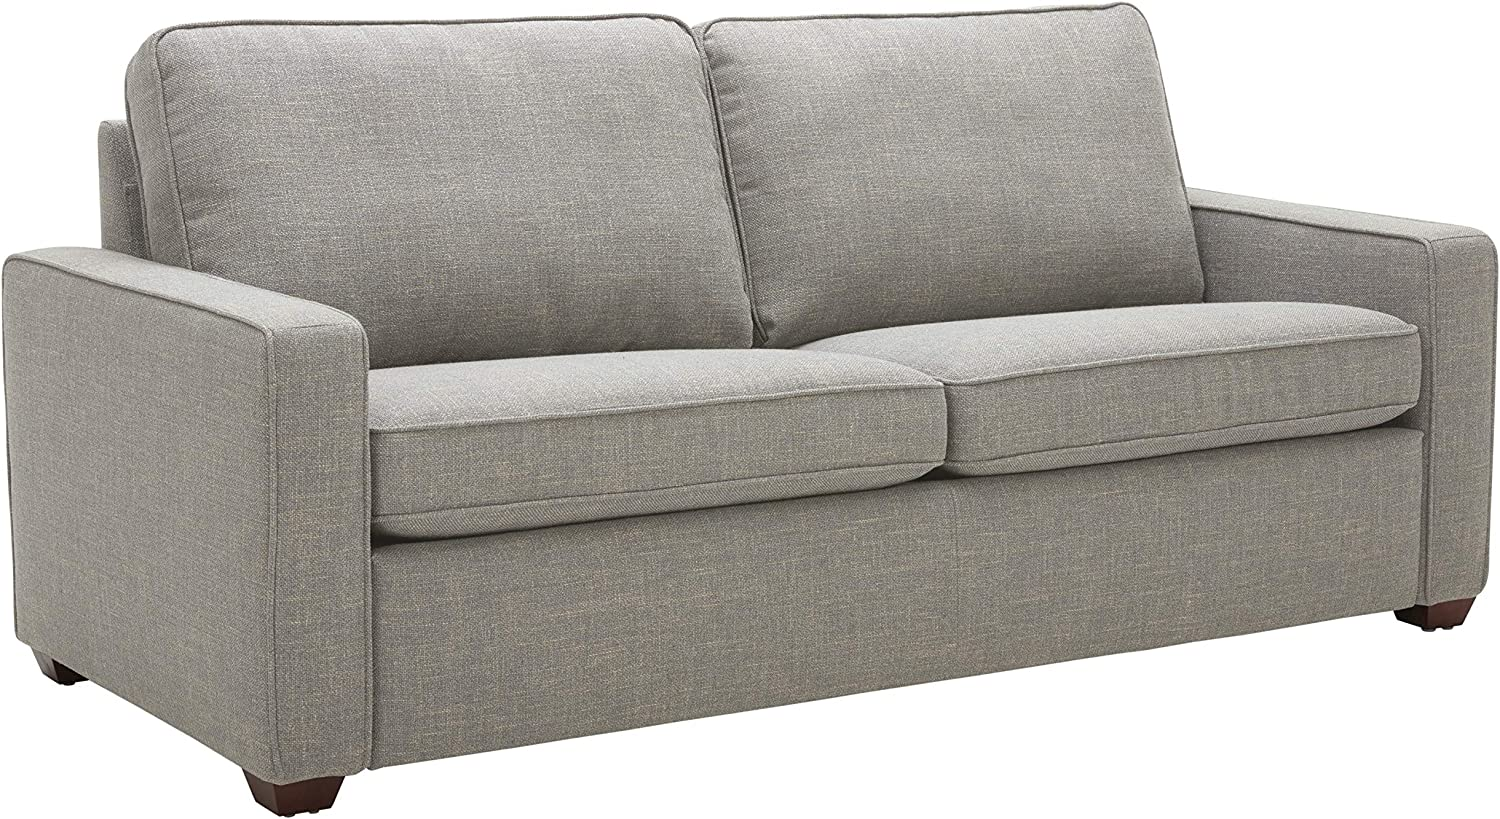 """Rivet Andrews Contemporary Sofa with Removable Cushions, 82""""W, Light Grey"""